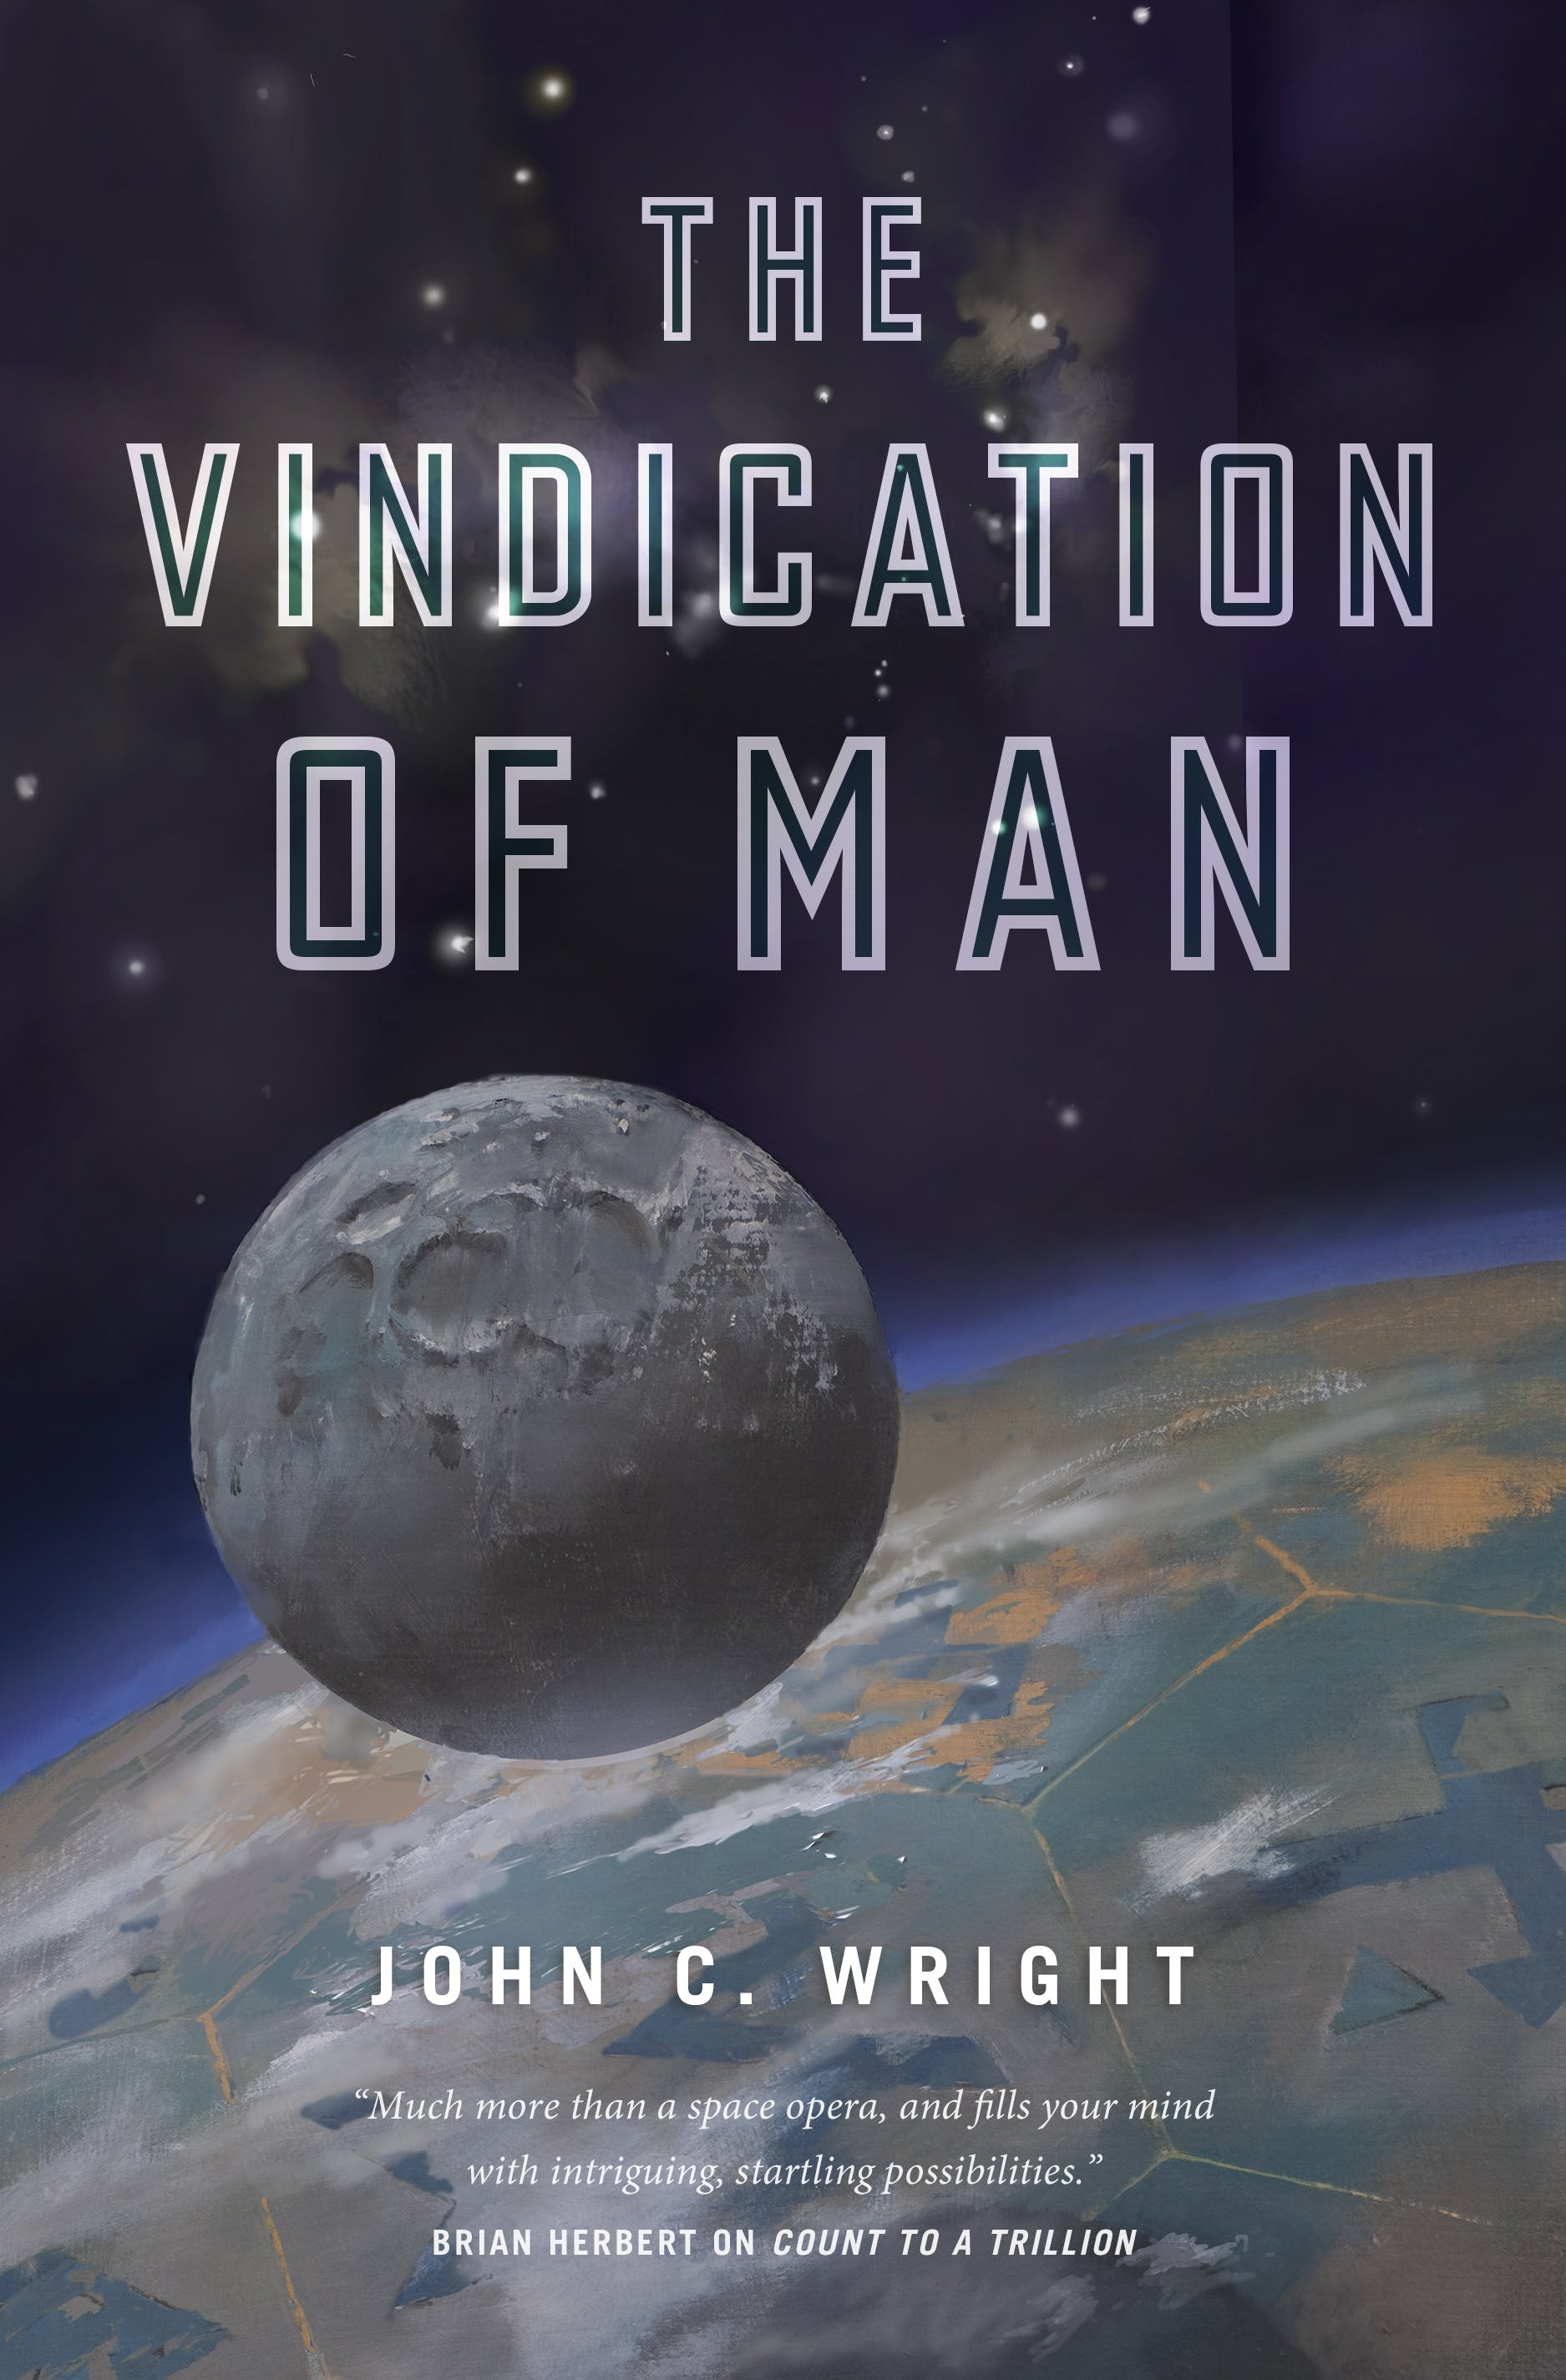 Image of The Vindication of Man